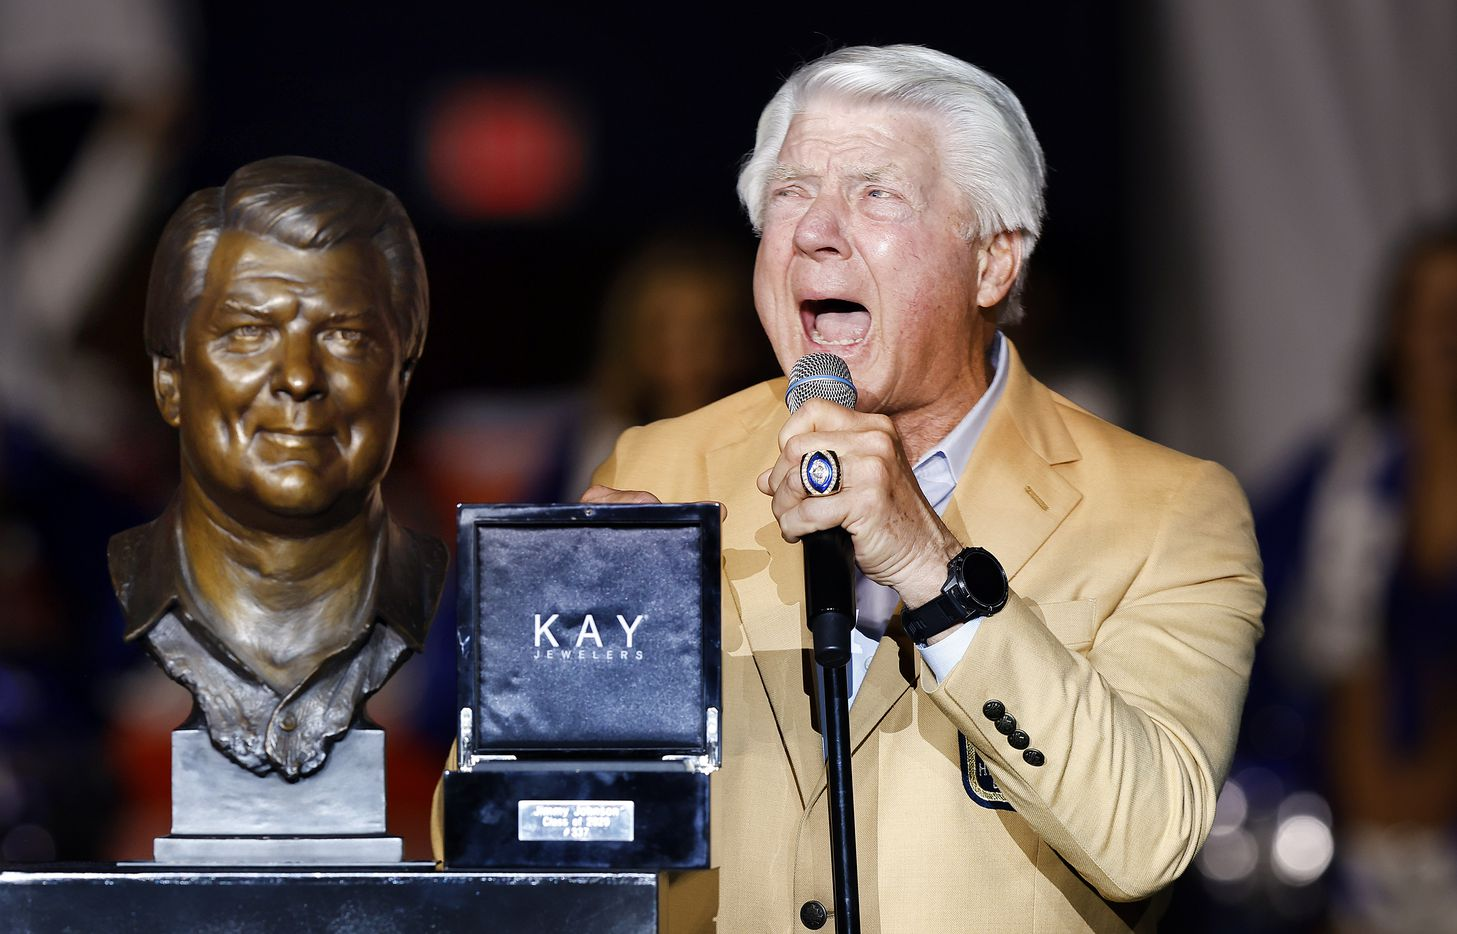 """Former Dallas Cowboys head coach and Pro Football Hall of Famer Jimmy Johnson yells """"How 'bout them Cowboys!"""" during his  Hall ring ceremony speech during halftime of the Philadelphia Eagles game at AT&T Stadium in Arlington, Monday, September 27, 2021. (Tom Fox/The Dallas Morning News)"""